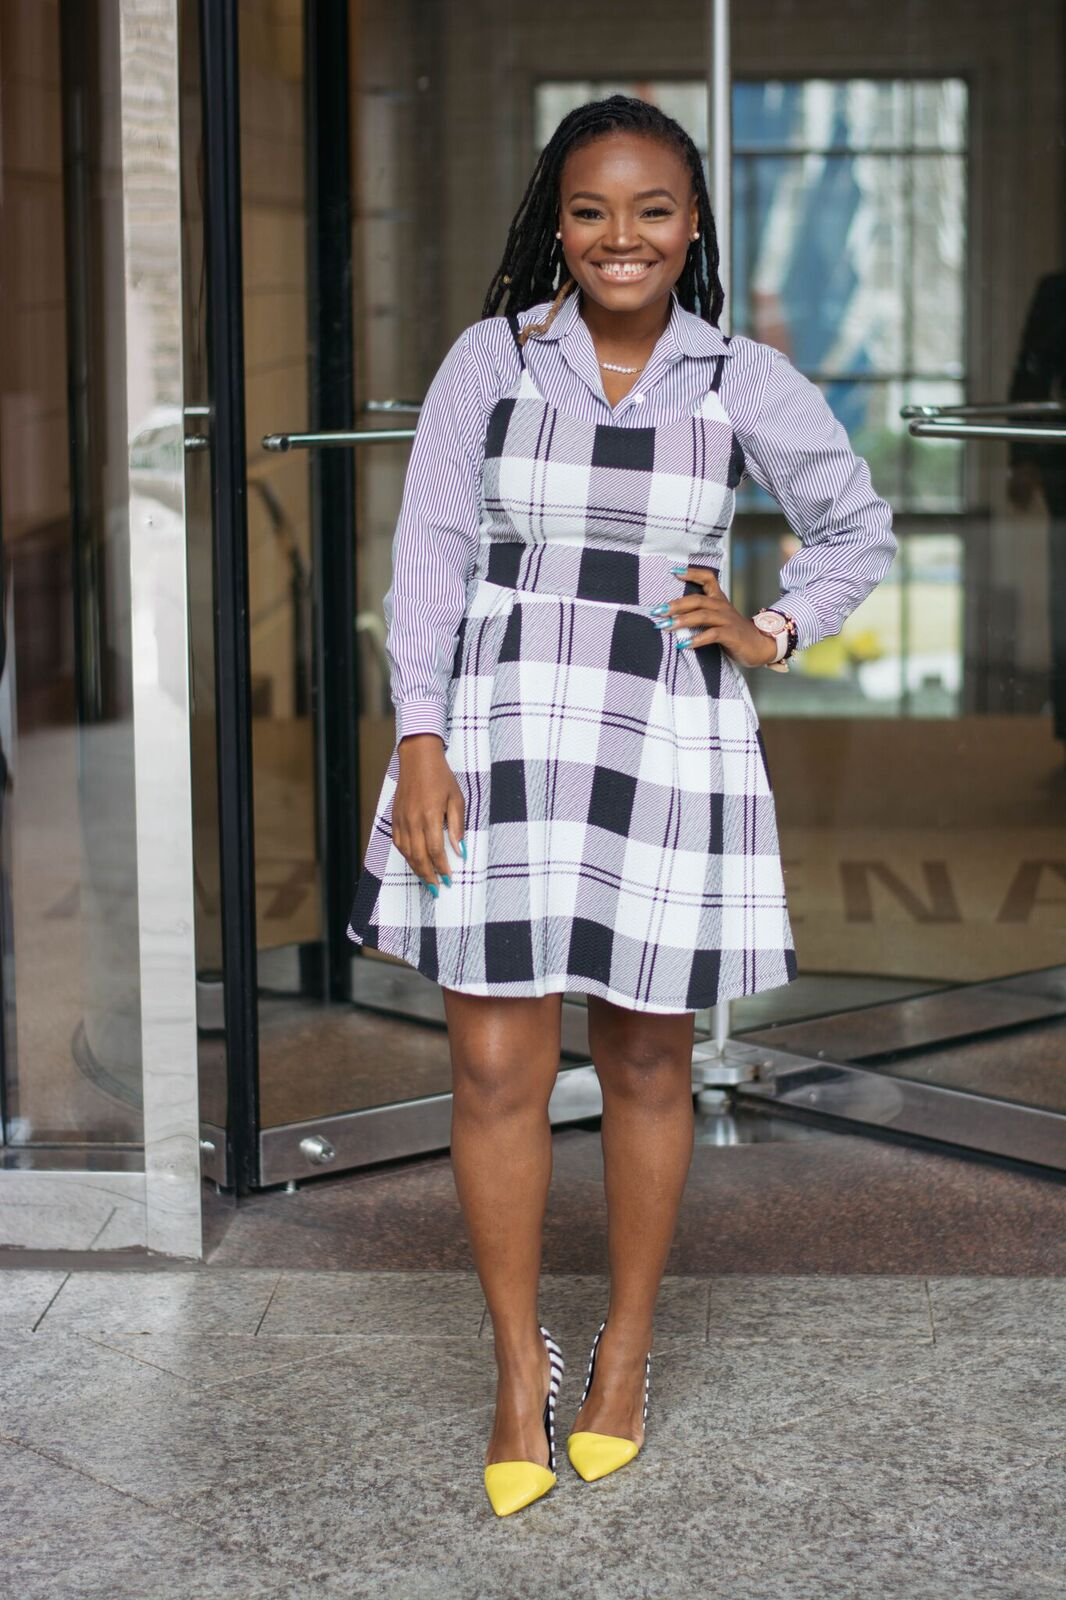 STYLE: SHIRT UNDER DRESS HOT TREND